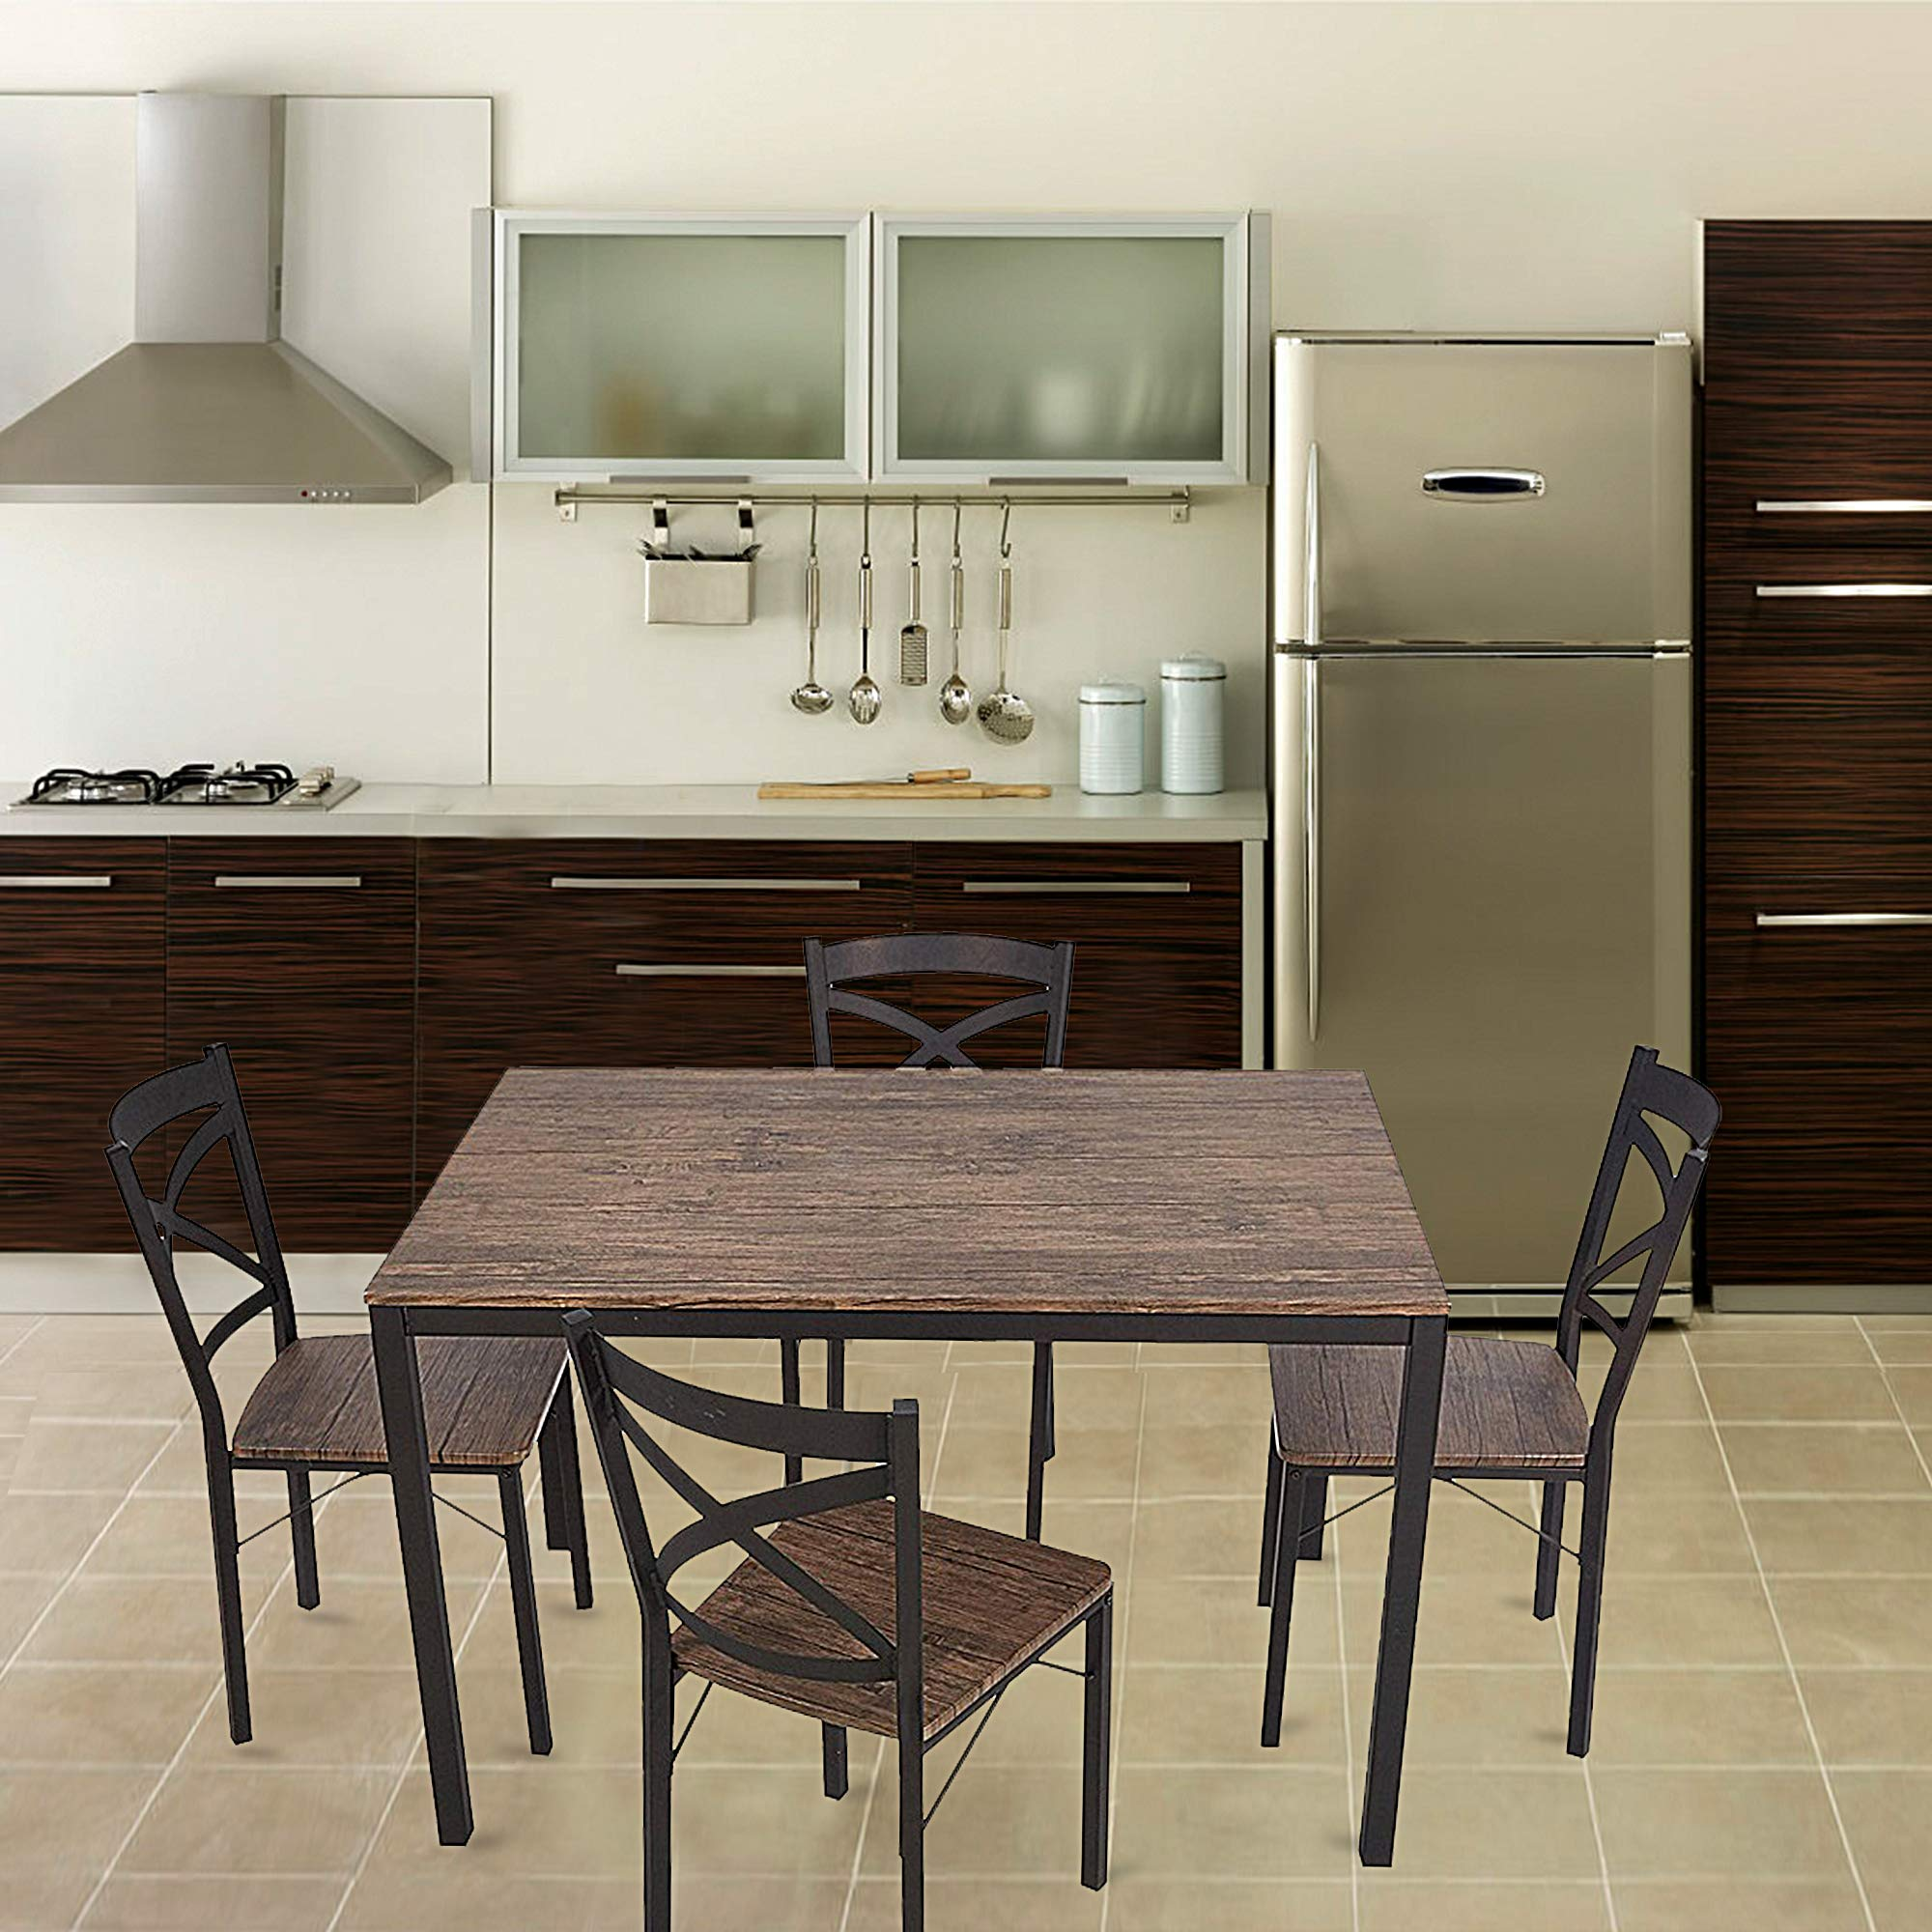 Dporticus 5-Piece Dining Set Industrial Style Wooden Kitchen Table and Chairs with Metal Legs- Espresso by Dporticus (Image #2)